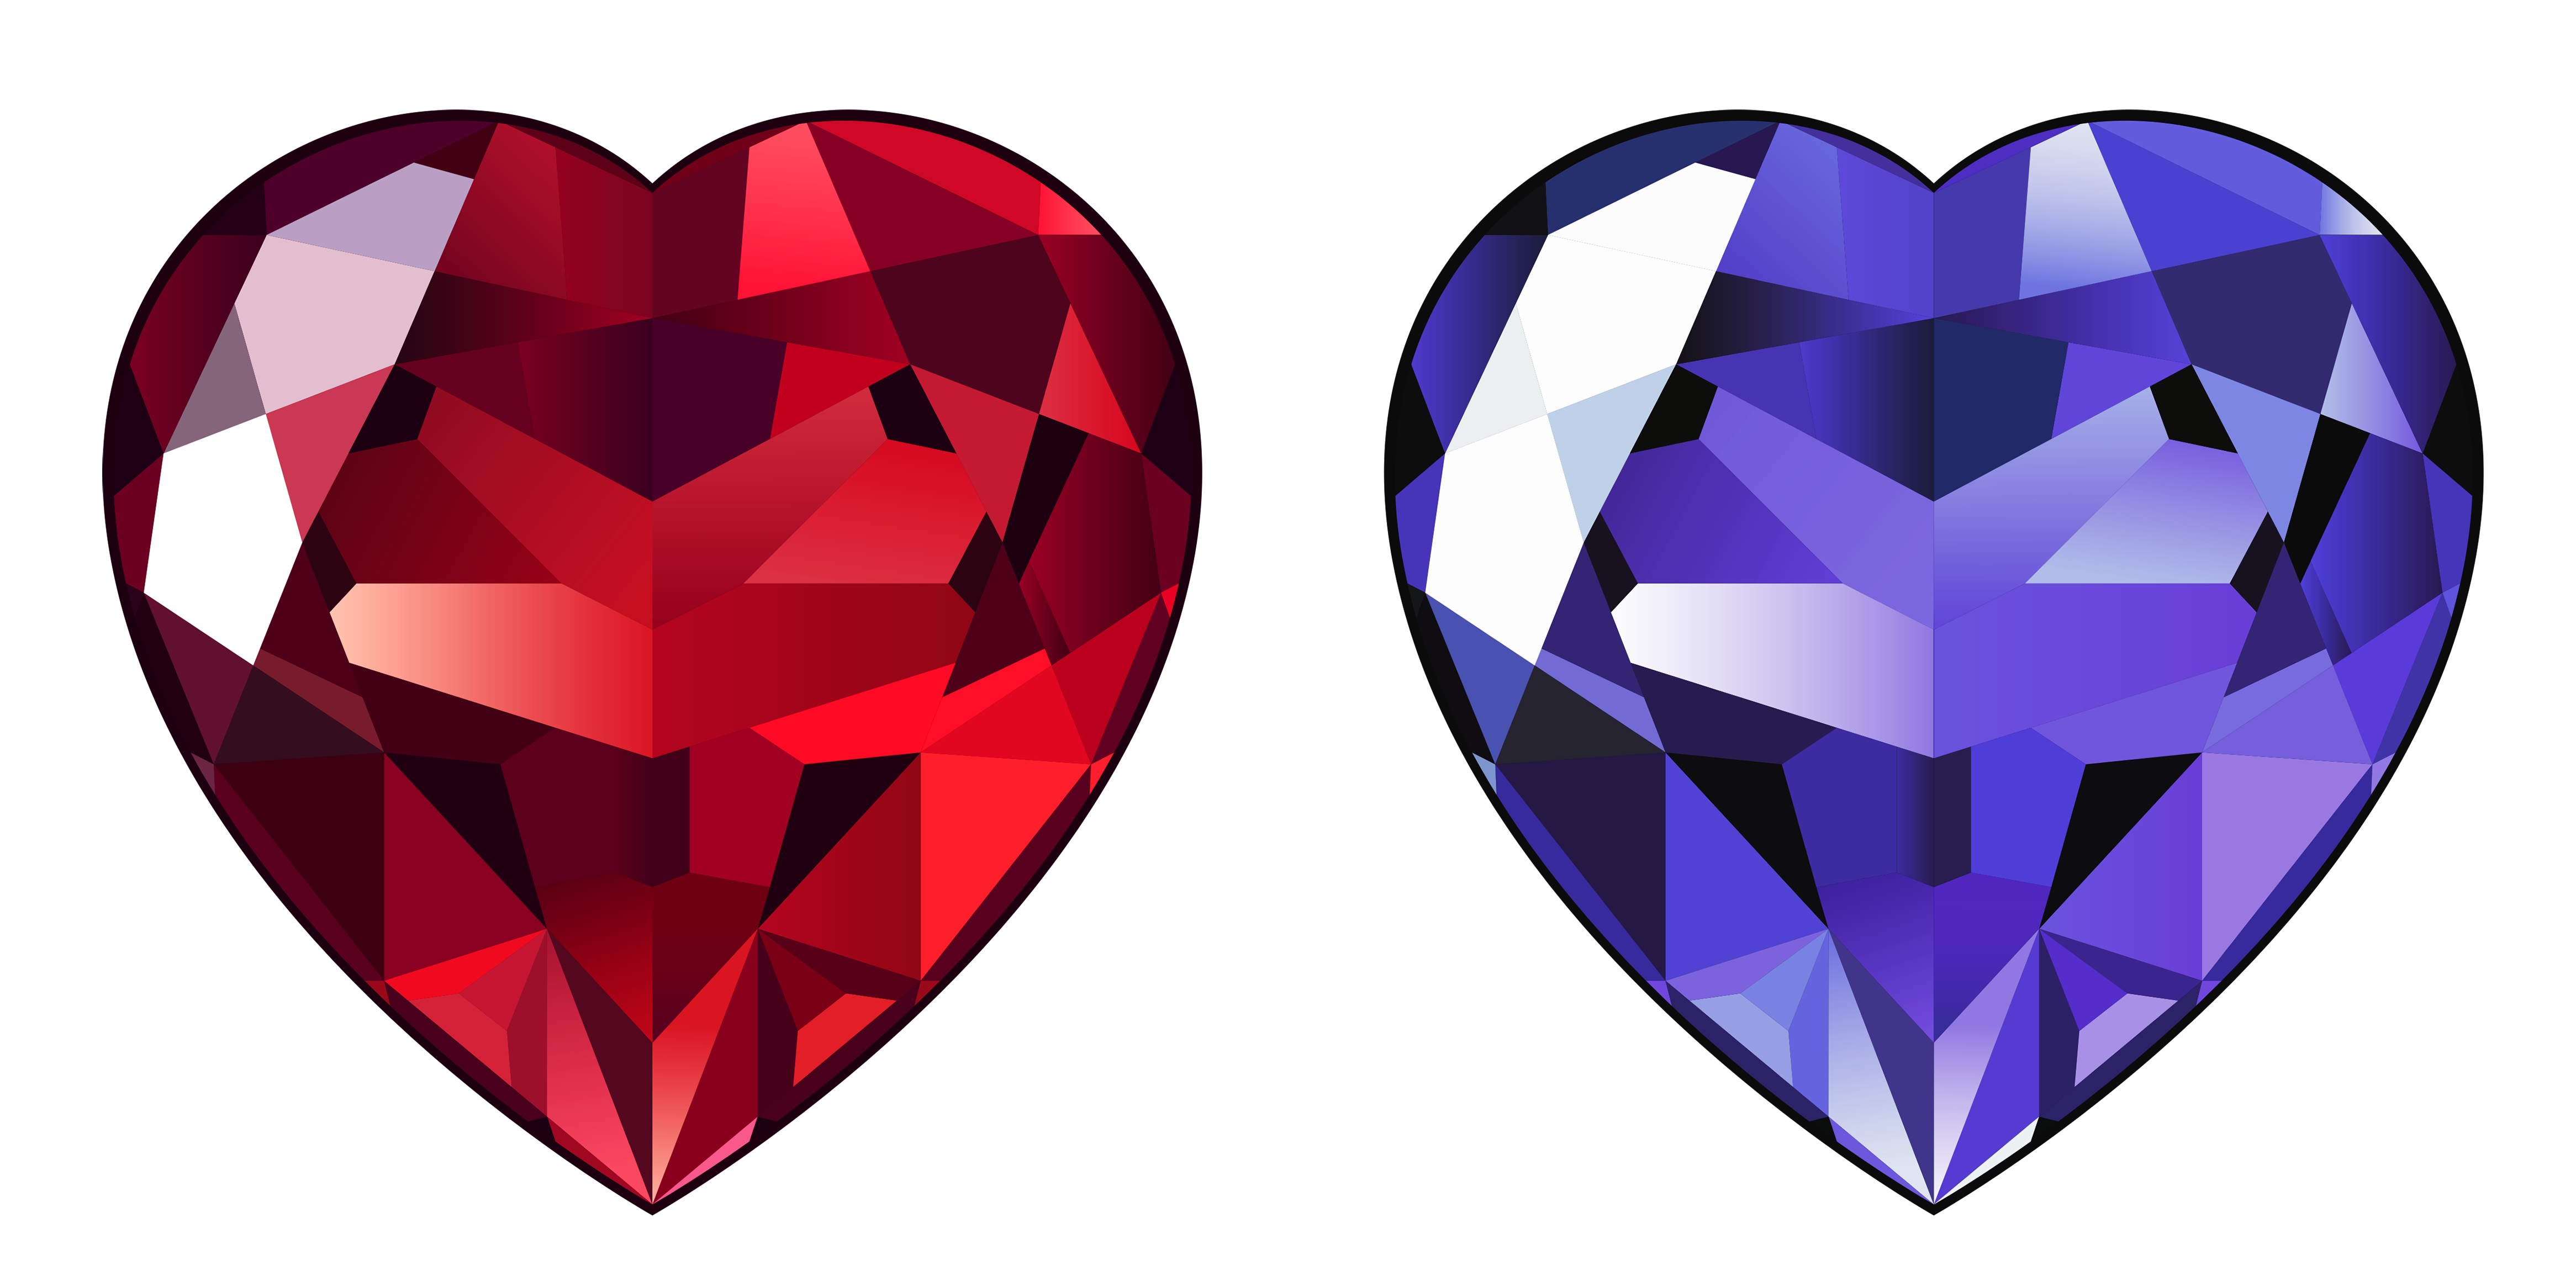 Diamonds clipart #1, Download drawings